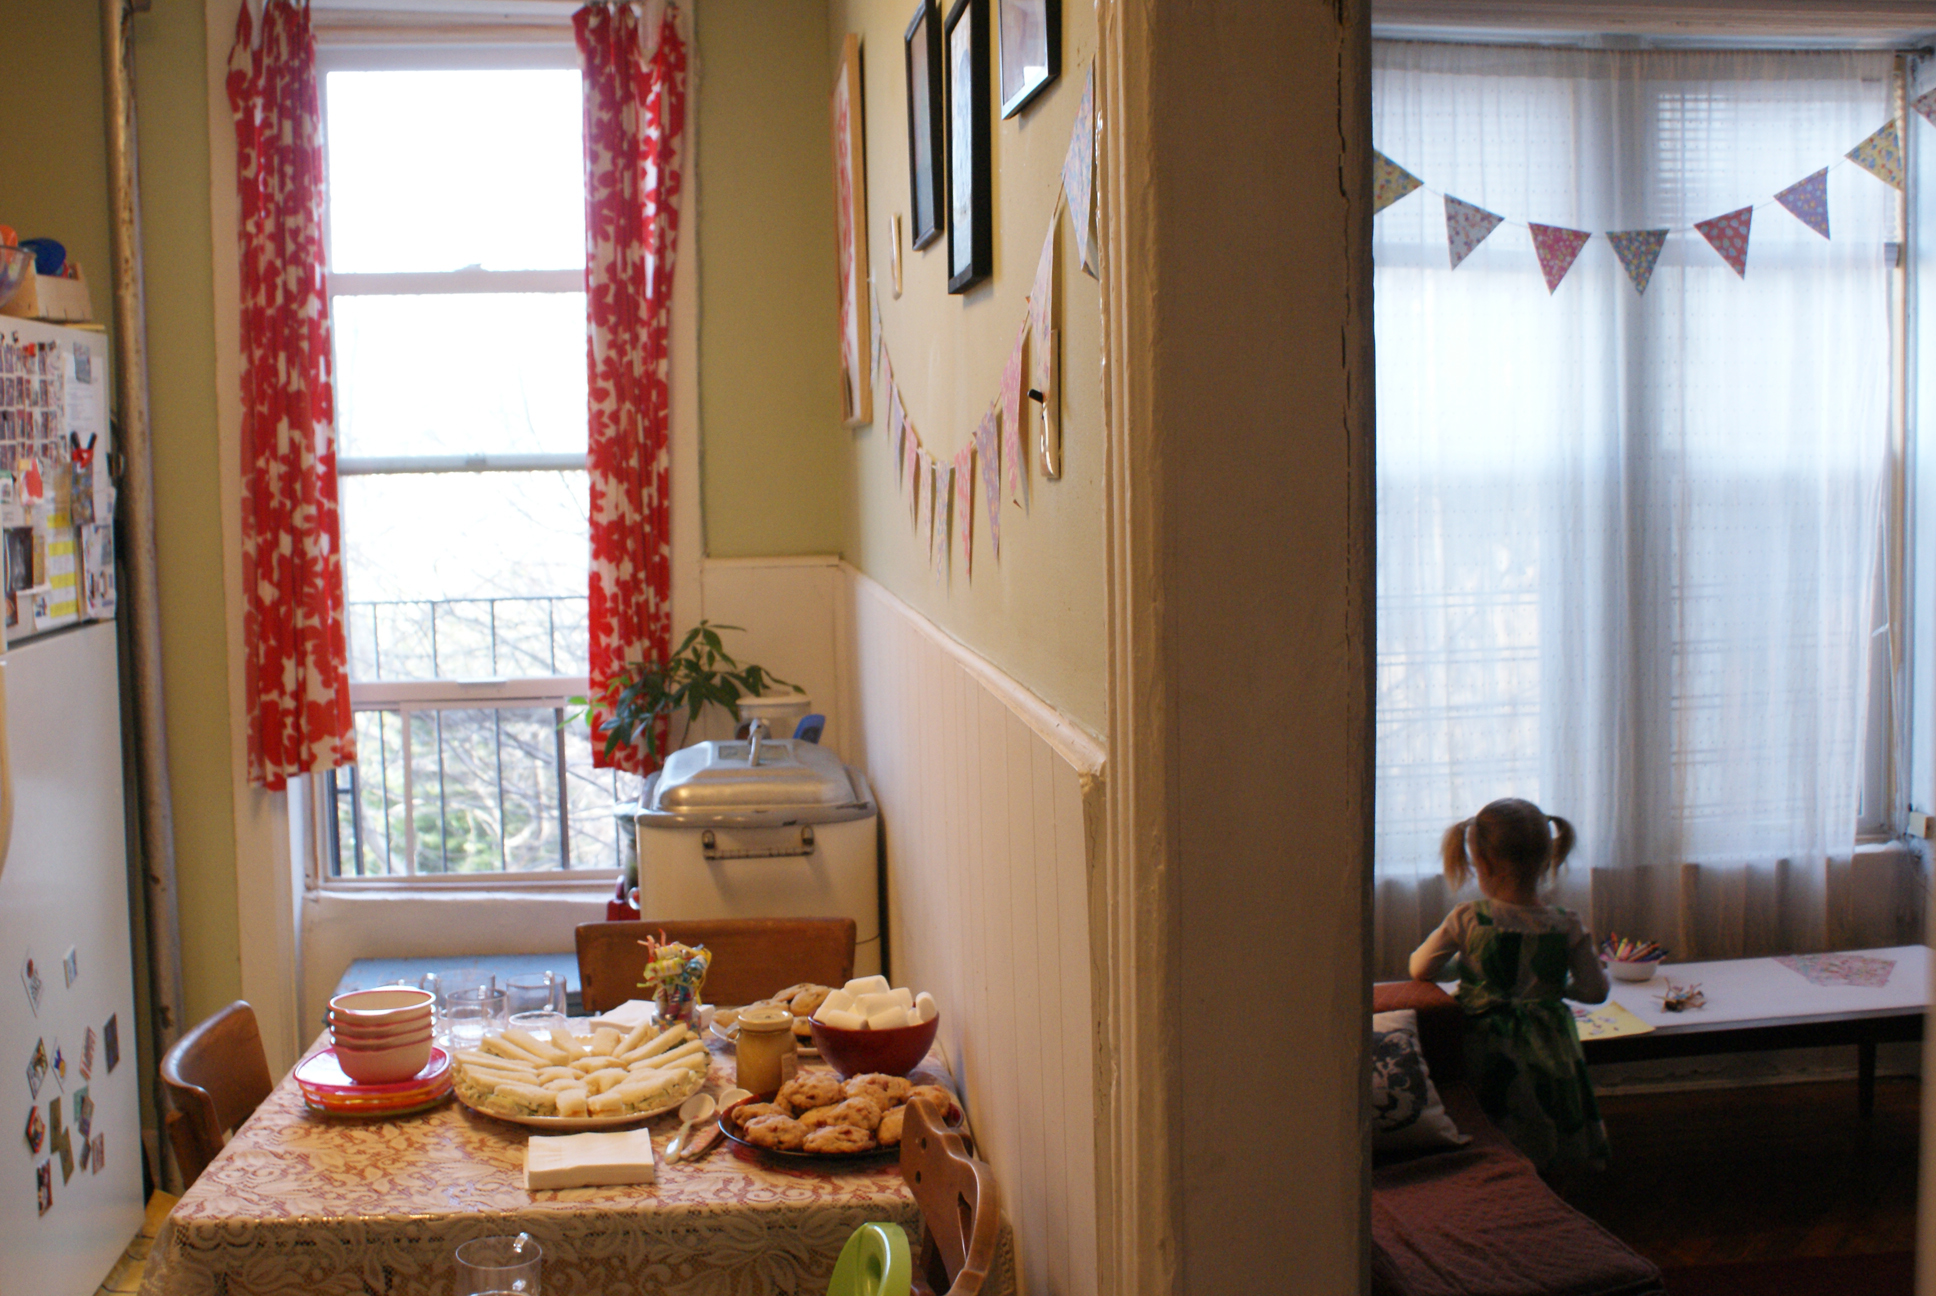 How to host a great kids 39 party in a small apartment for Good ideas for small apartments